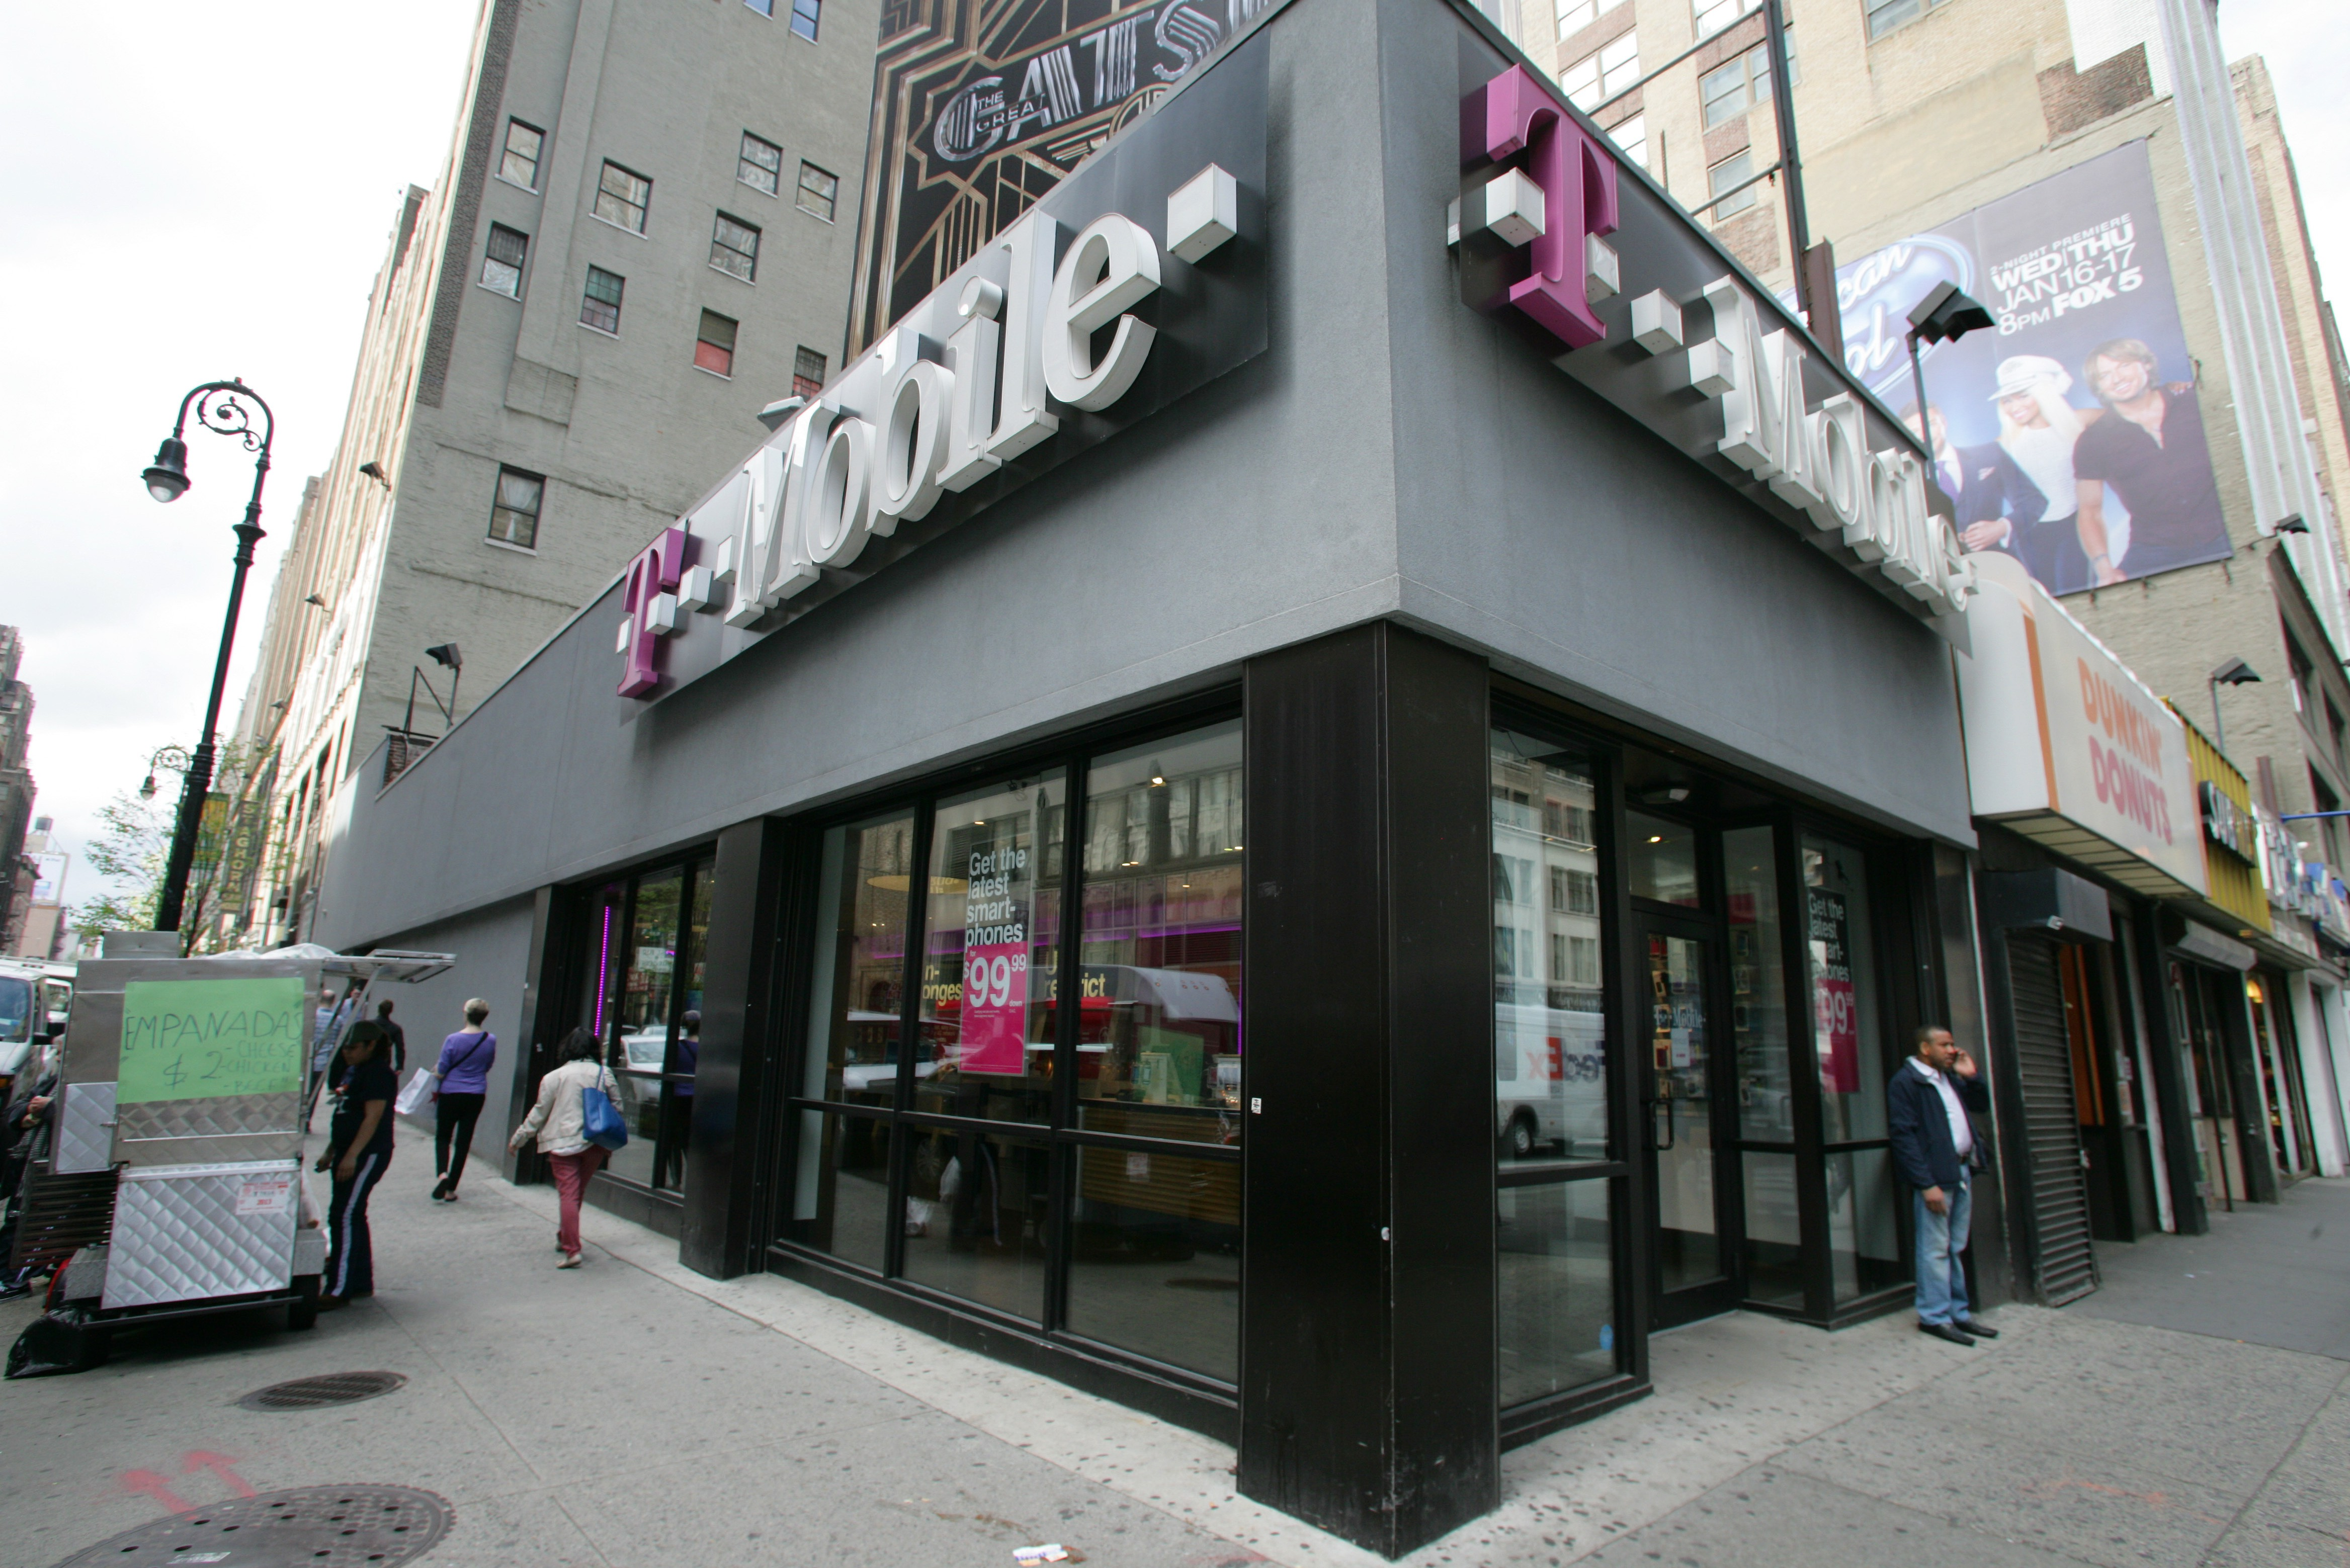 T-Mobile store generic NYC